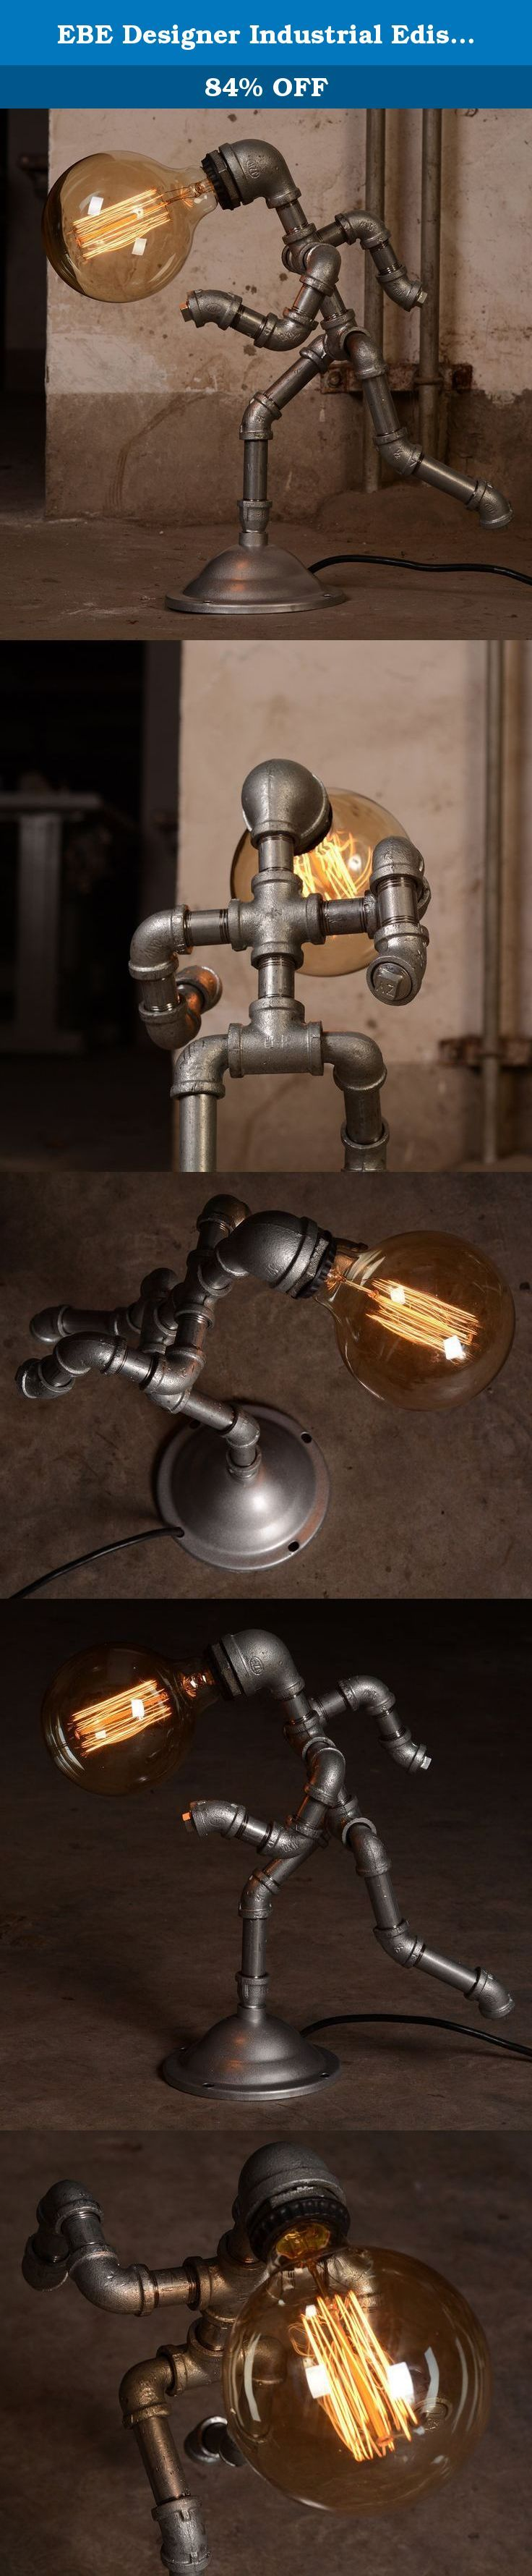 EBE Designer Industrial Edison Vintage Style Running Man Rustic Water Pipe Table Lamp Bedside (Silver). Unique Running Man water piping lamp, perfect for comic fans or retro steampunk collectors. 40w lighting is bright enough to light surrounding area yet not overpowering on the eyes. This lamp can accommodate any standard E26/E27 lightbulb of your choice ( LED, Halogen or Edison bulb ).